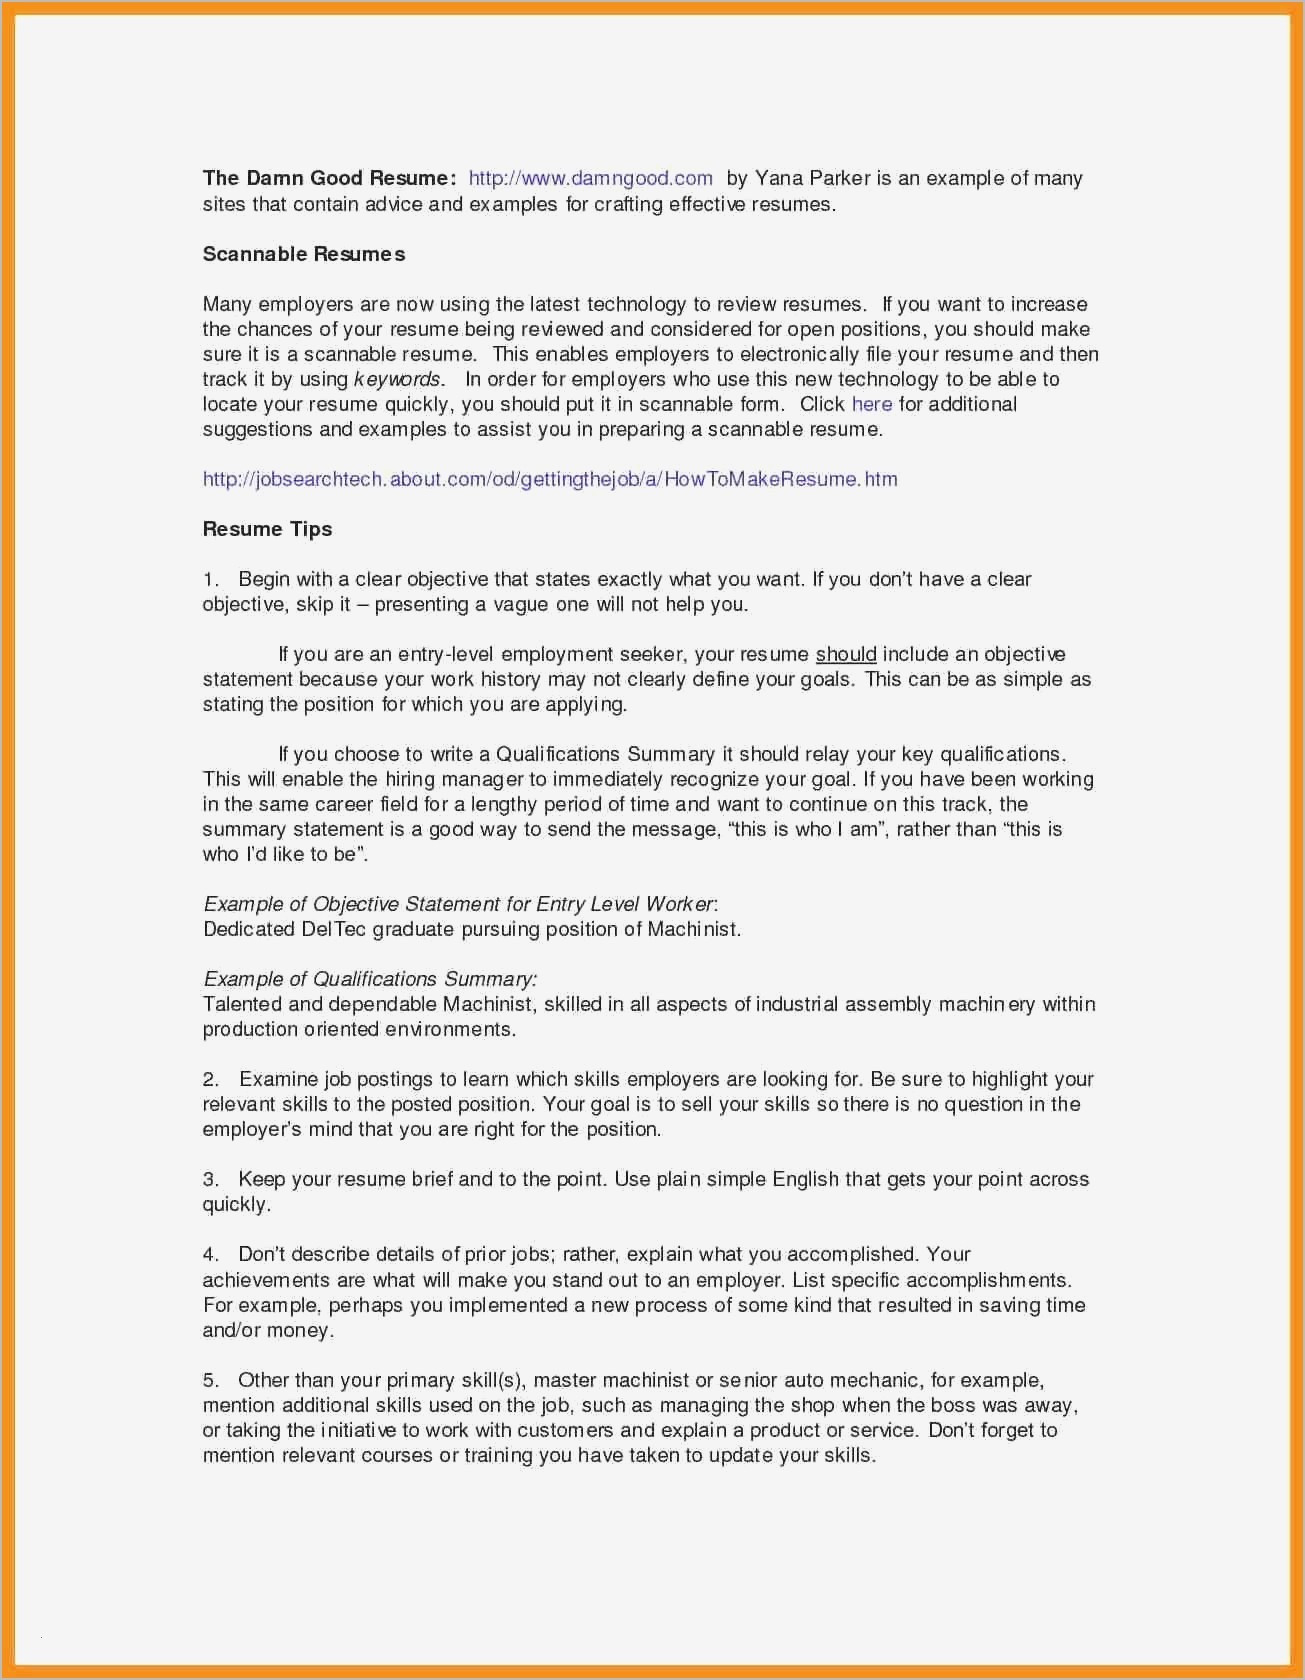 customer service representative skills resume example-Good Objective Statement For Resume For Customer Service Valid Production Supervisor Resume Samples Unique Resume Skills For 5-t